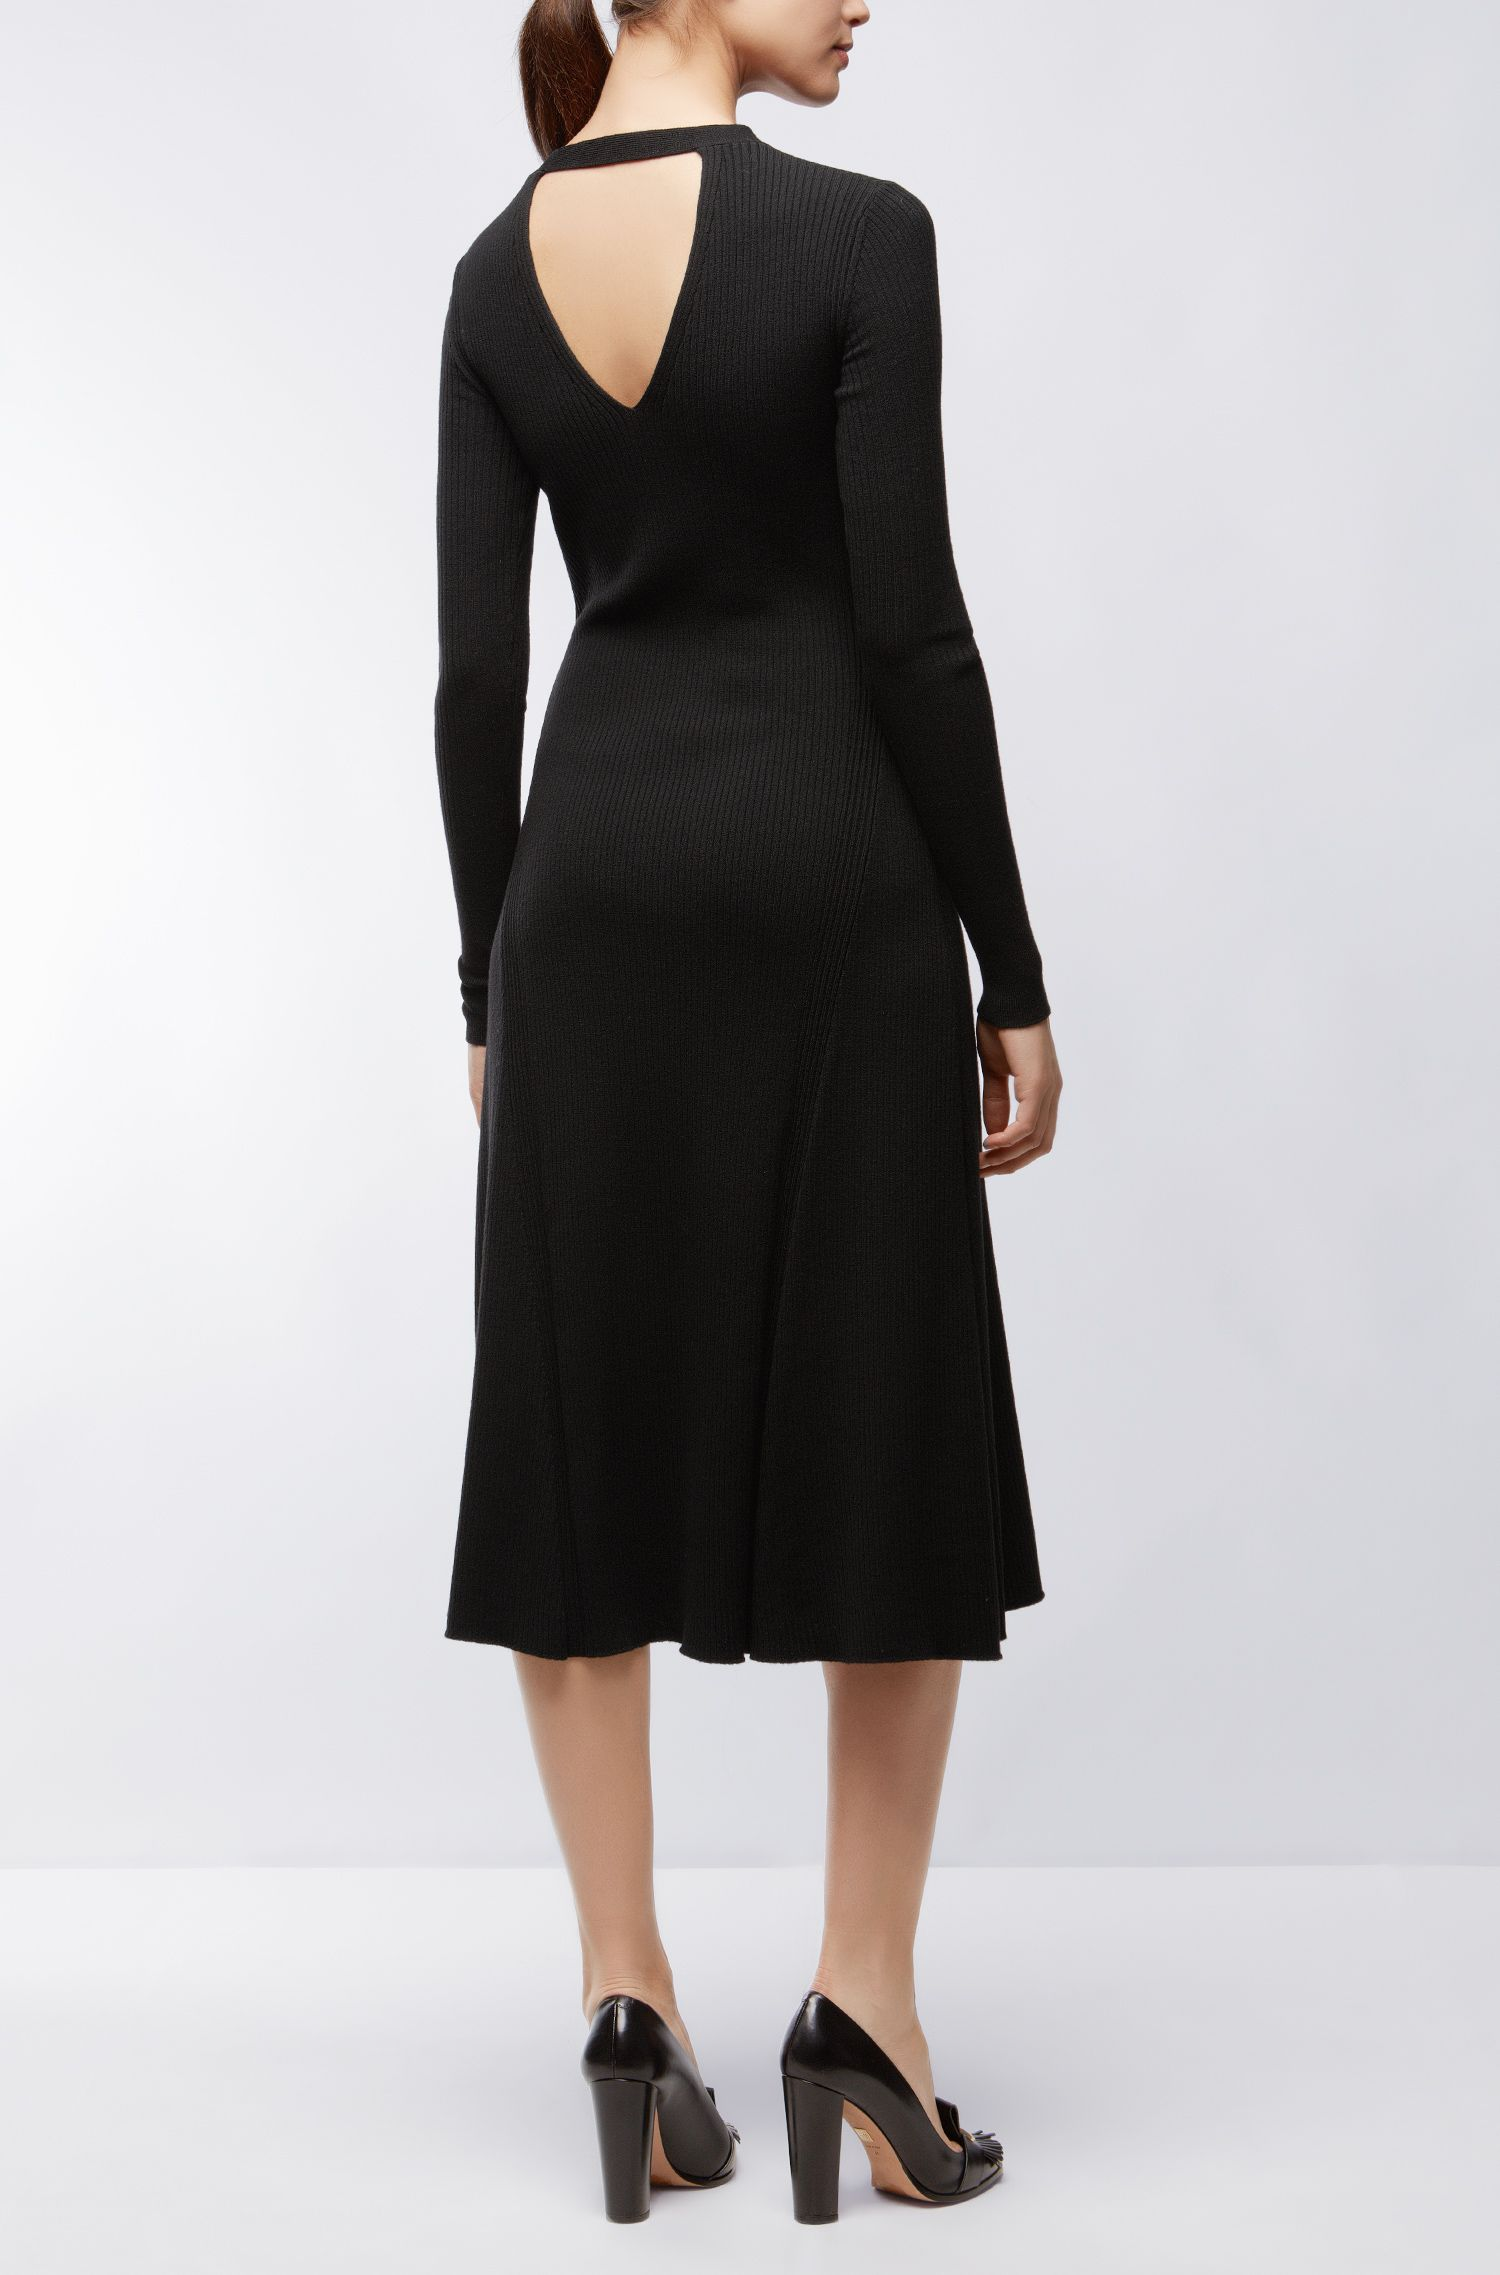 Ribbed Stretch Virgin Wool Dress | Faustine